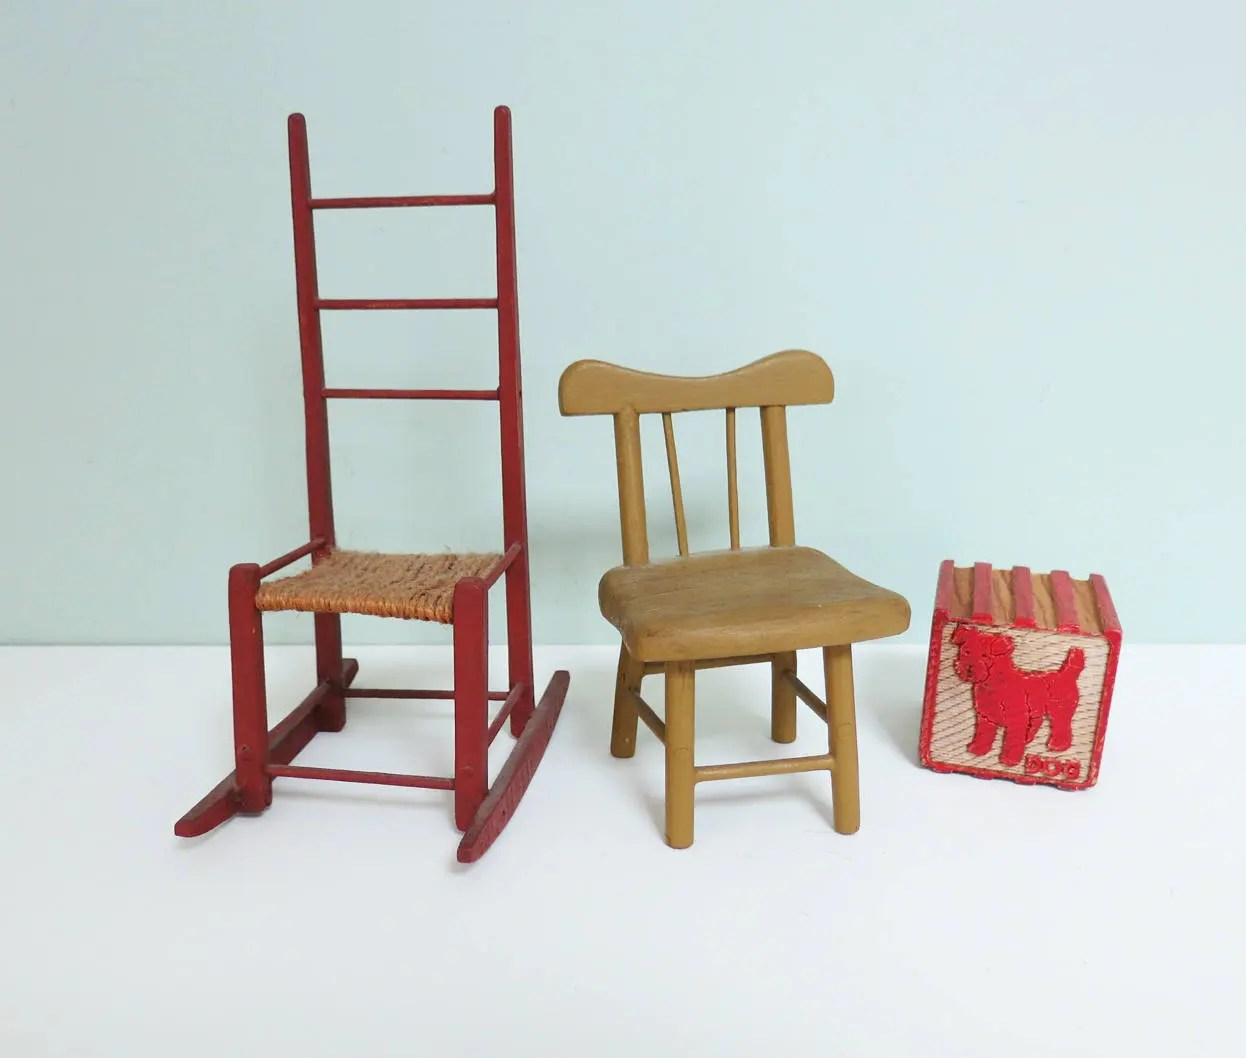 handmade wooden chairs table high chair babies r us two miniature signed by the maker in etsy image 0